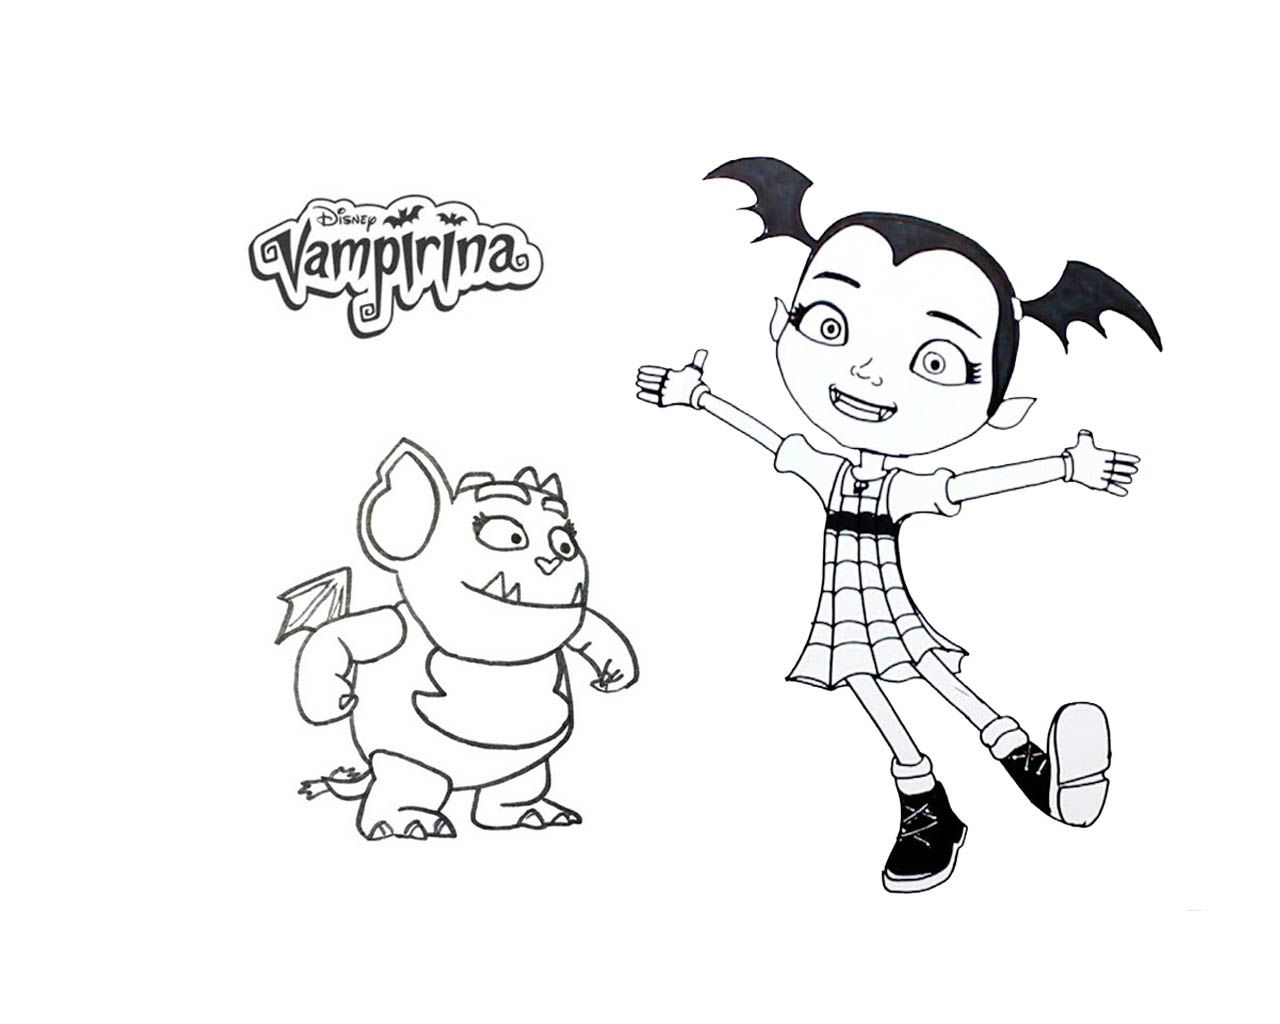 Fresh Vampirina Coloring Pages Free Disney Embroidery Coloring Pages Halloween Coloring Pages